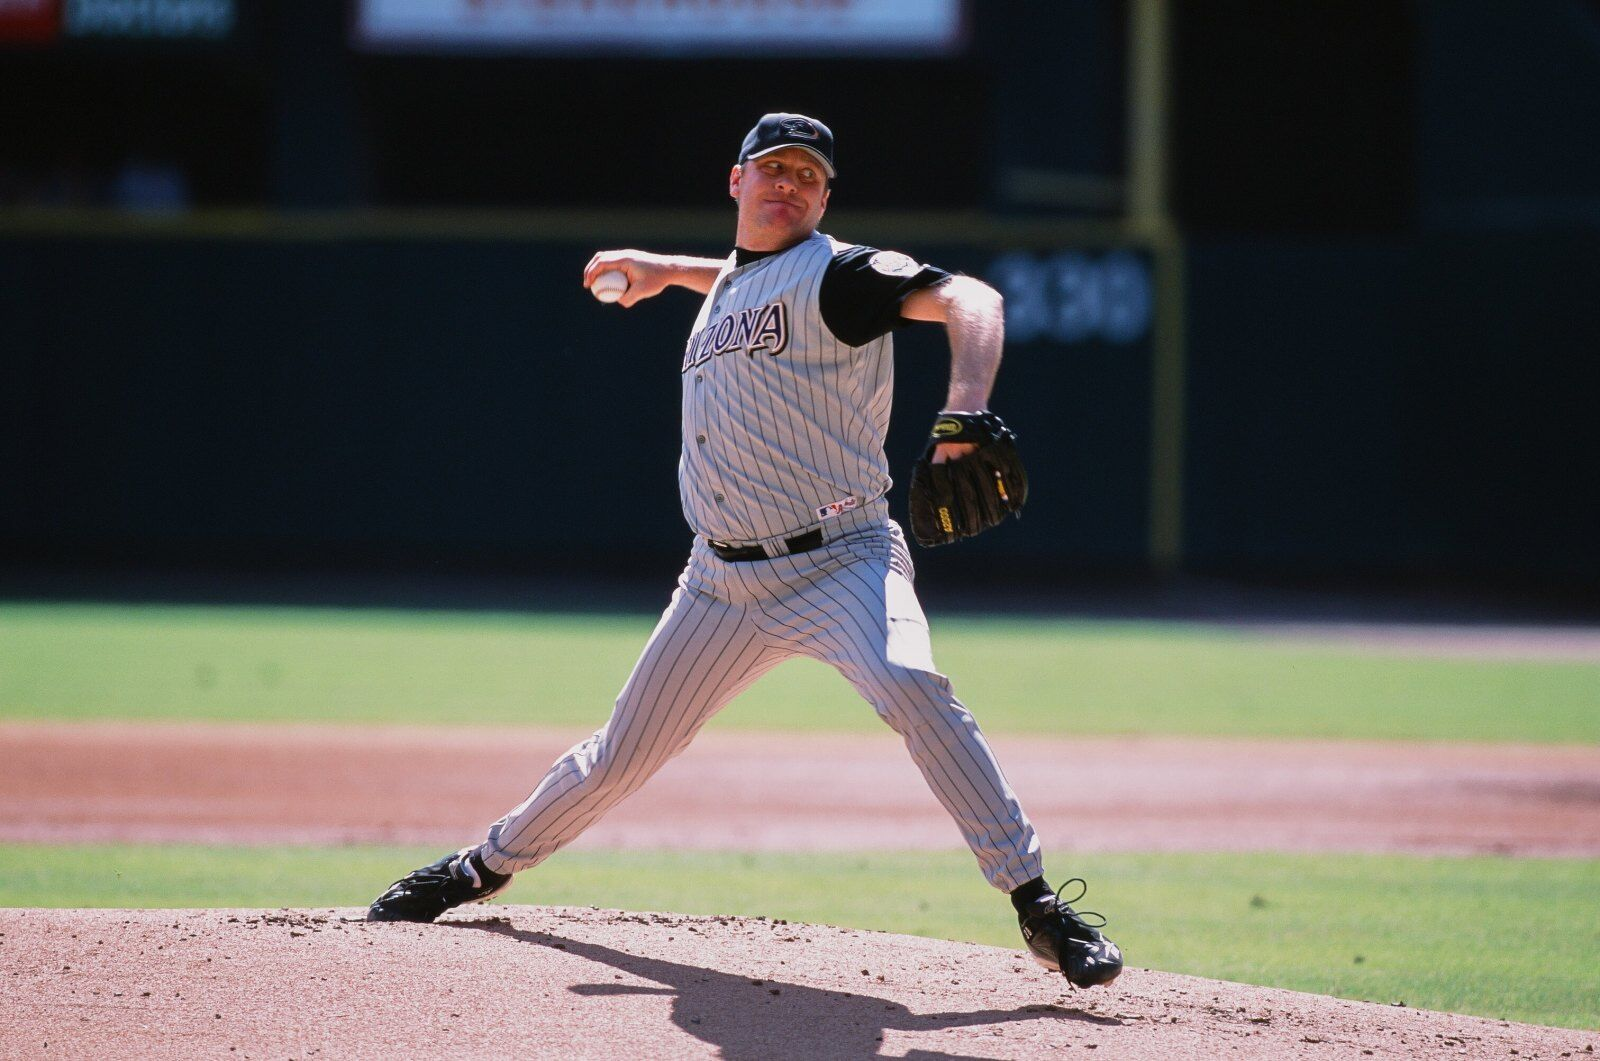 Arizona Diamondbacks legend Curt Schilling mulling run for Congress